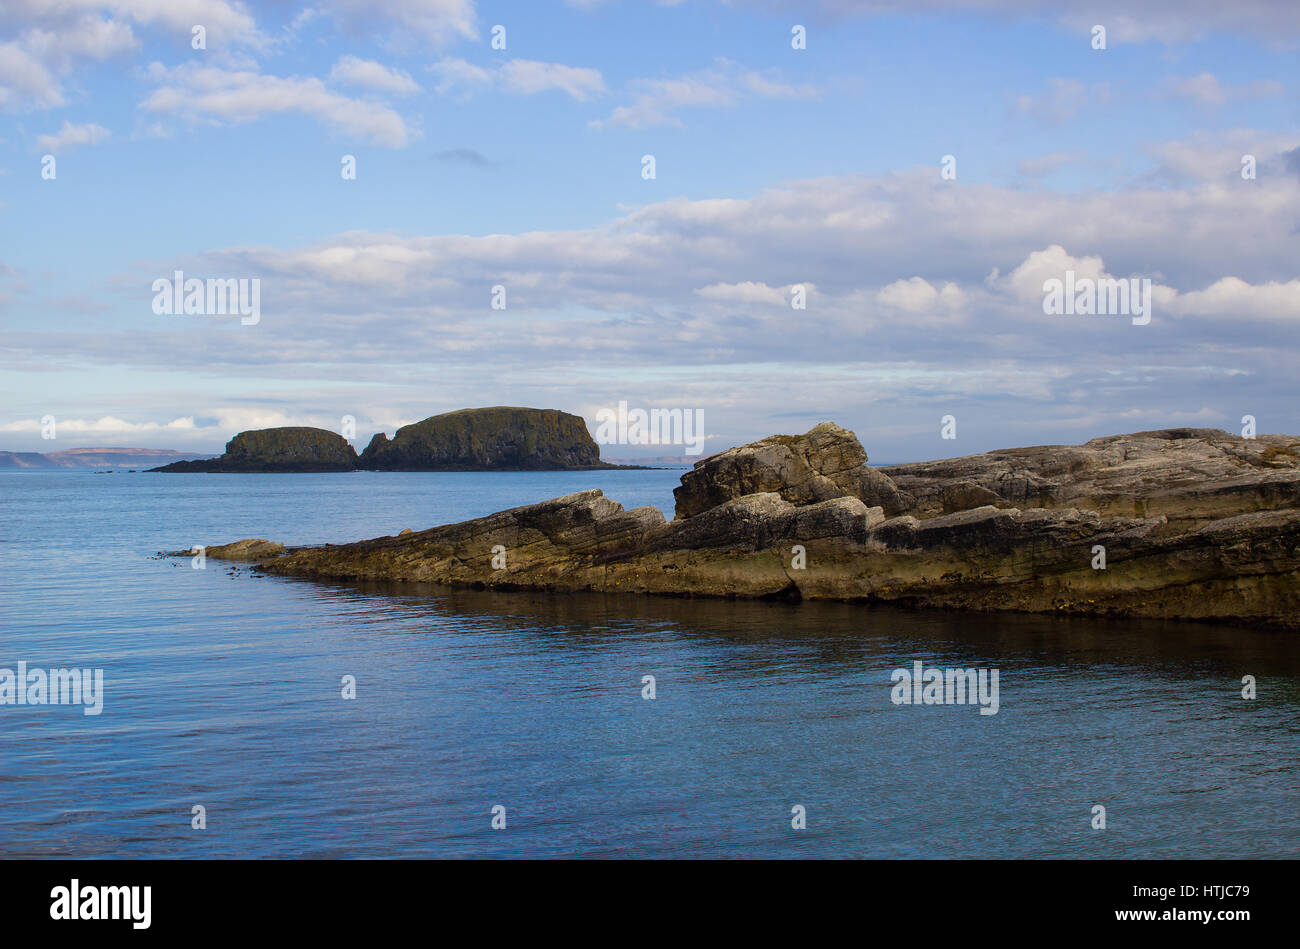 The small harbor at Ballintoy on the North Antrim coast of Northern ireland with its stone built boathouse reflecting - Stock Image